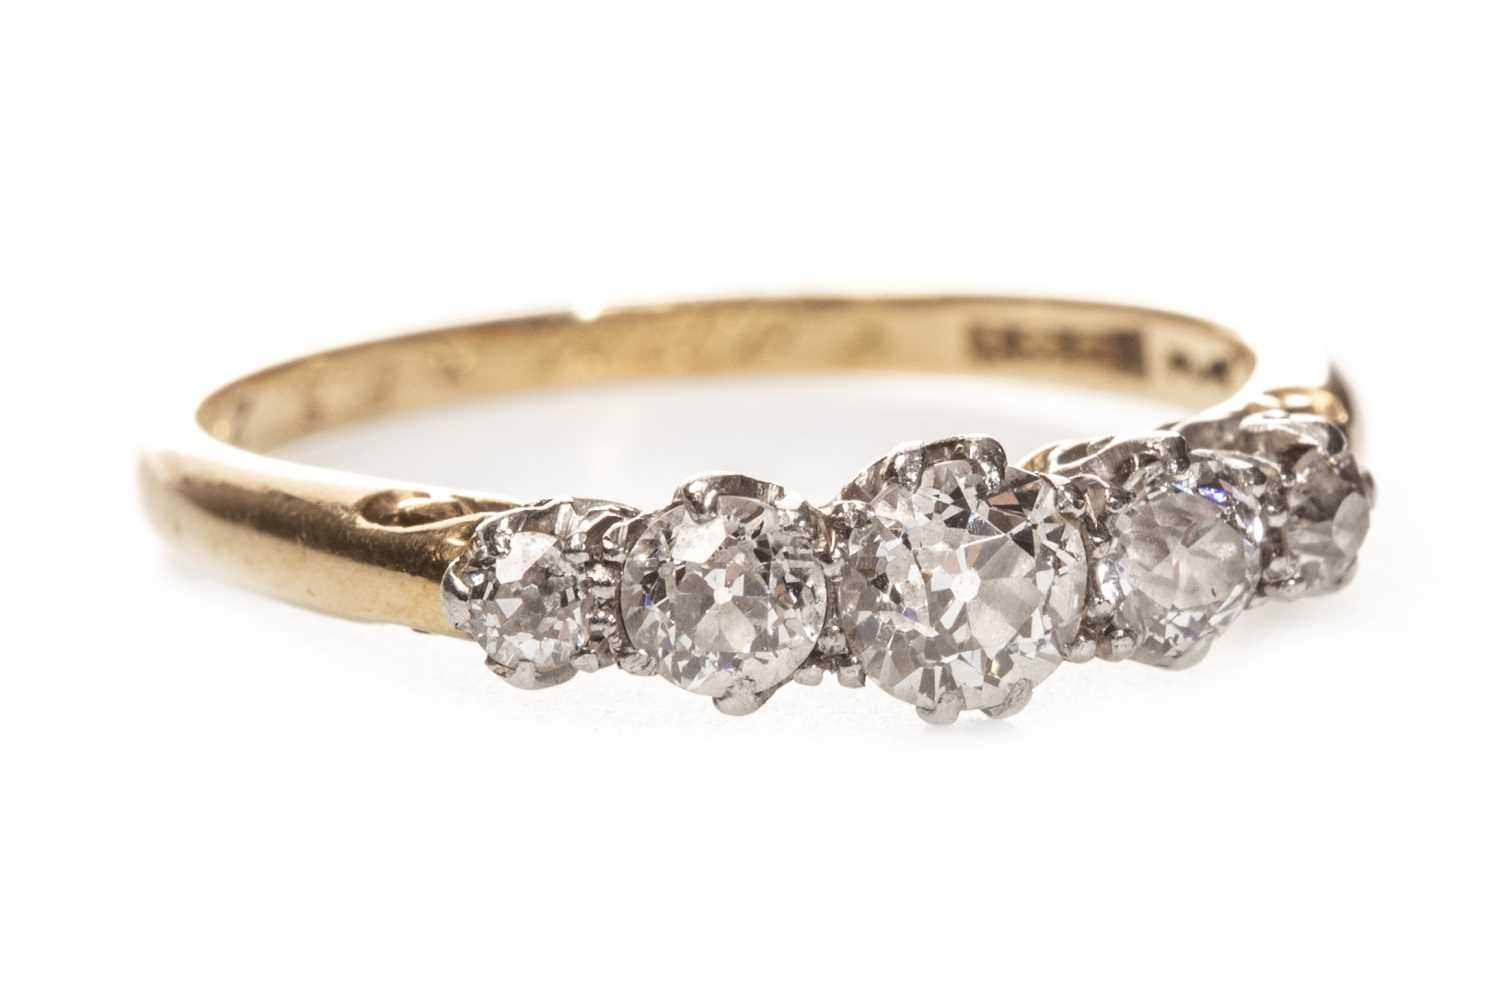 Lot 21 - AN EARLY 20TH CENTURY DIAMOND FIVE STONE RING